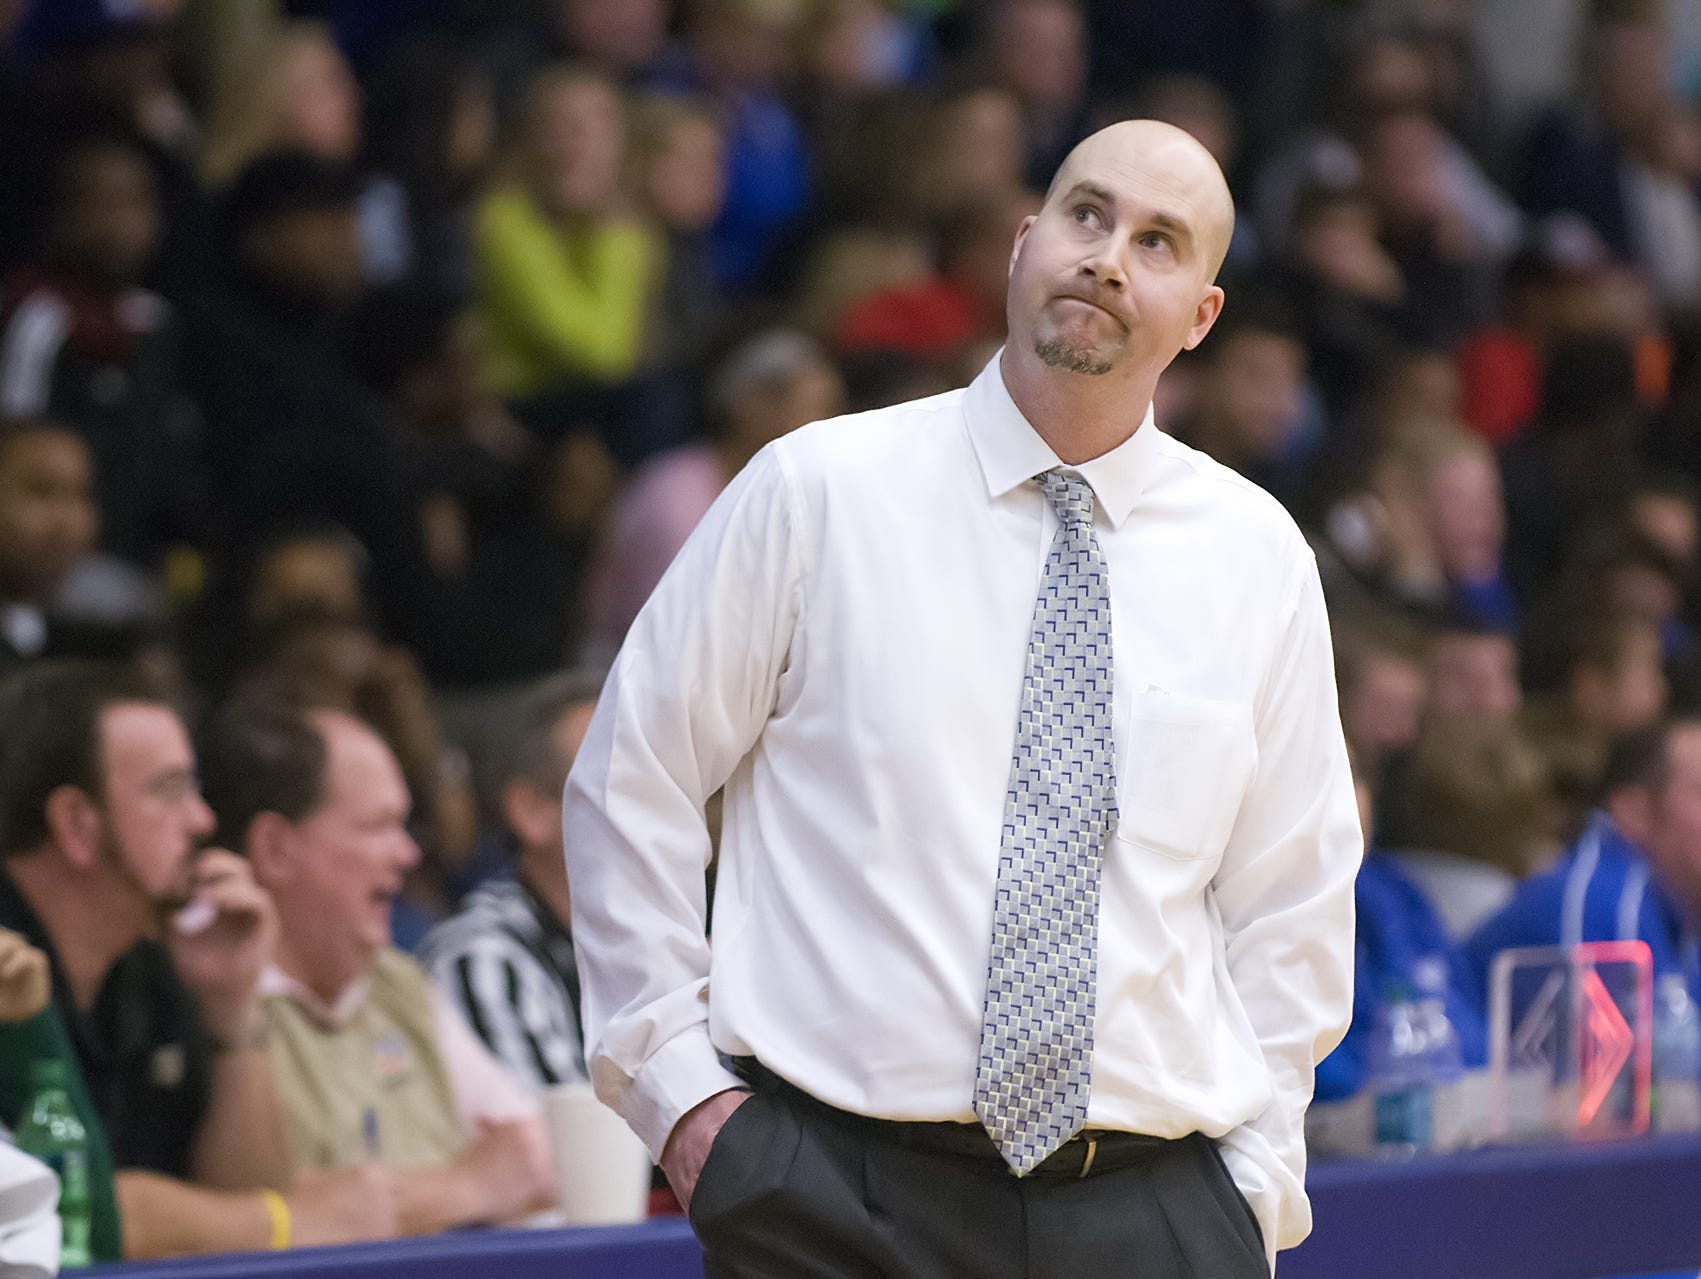 Jason Delaney, who led Tech to a Class 4A state title in 2014, will be Cathedral's new boys basketball coach.